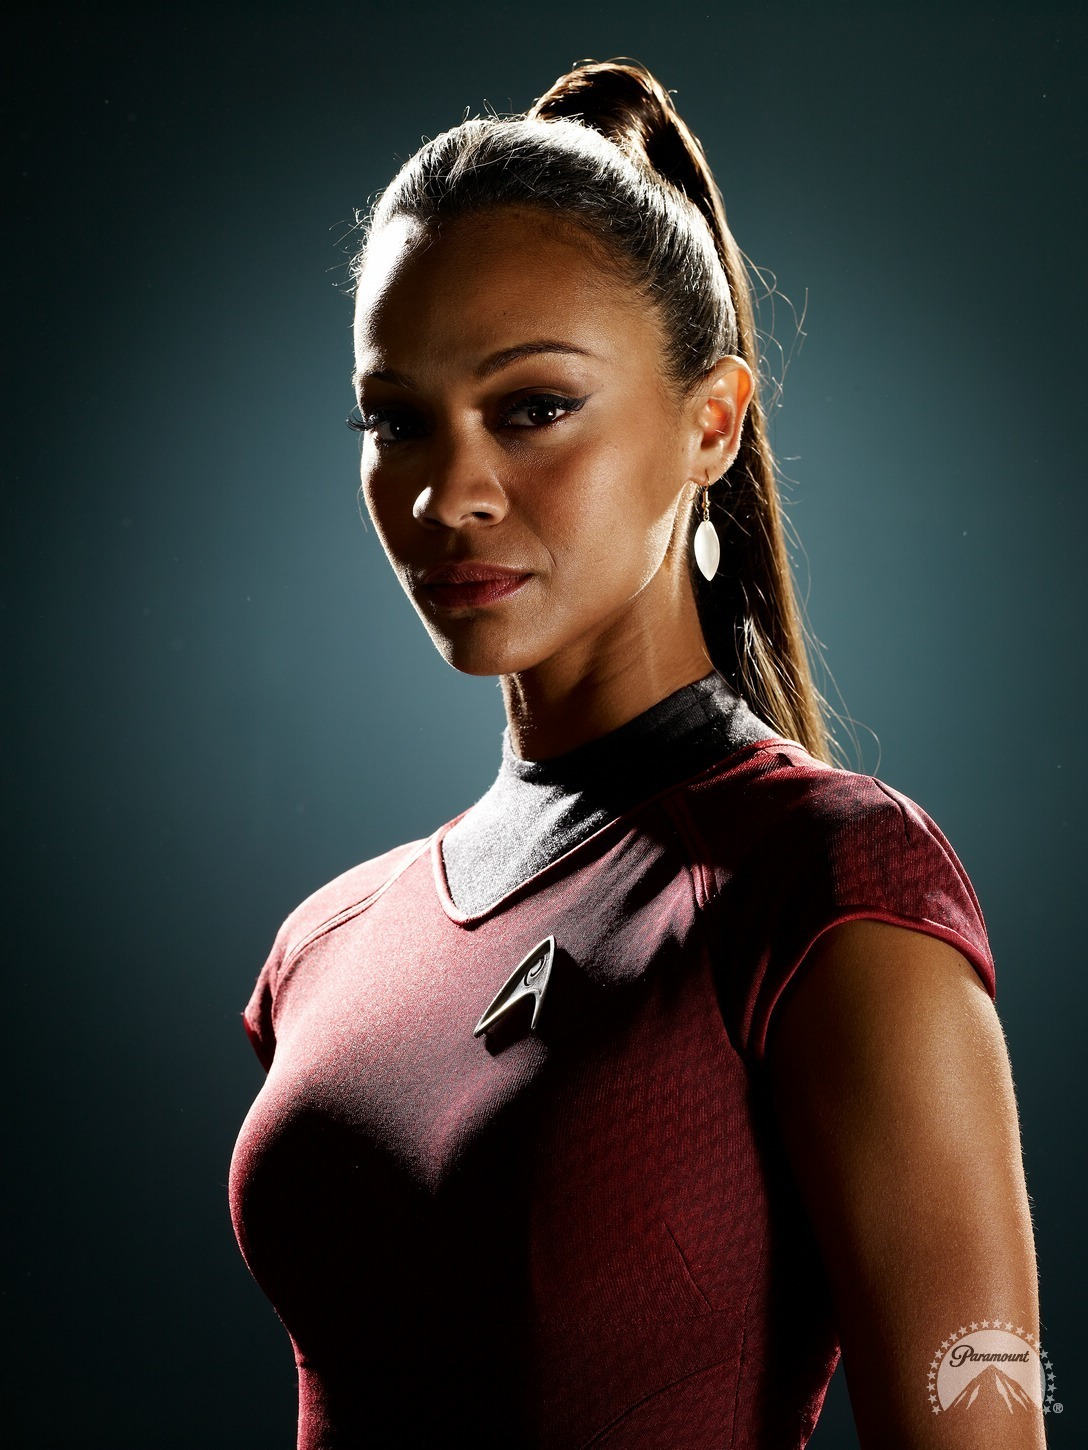 Uhura (Zoe Saldana version)